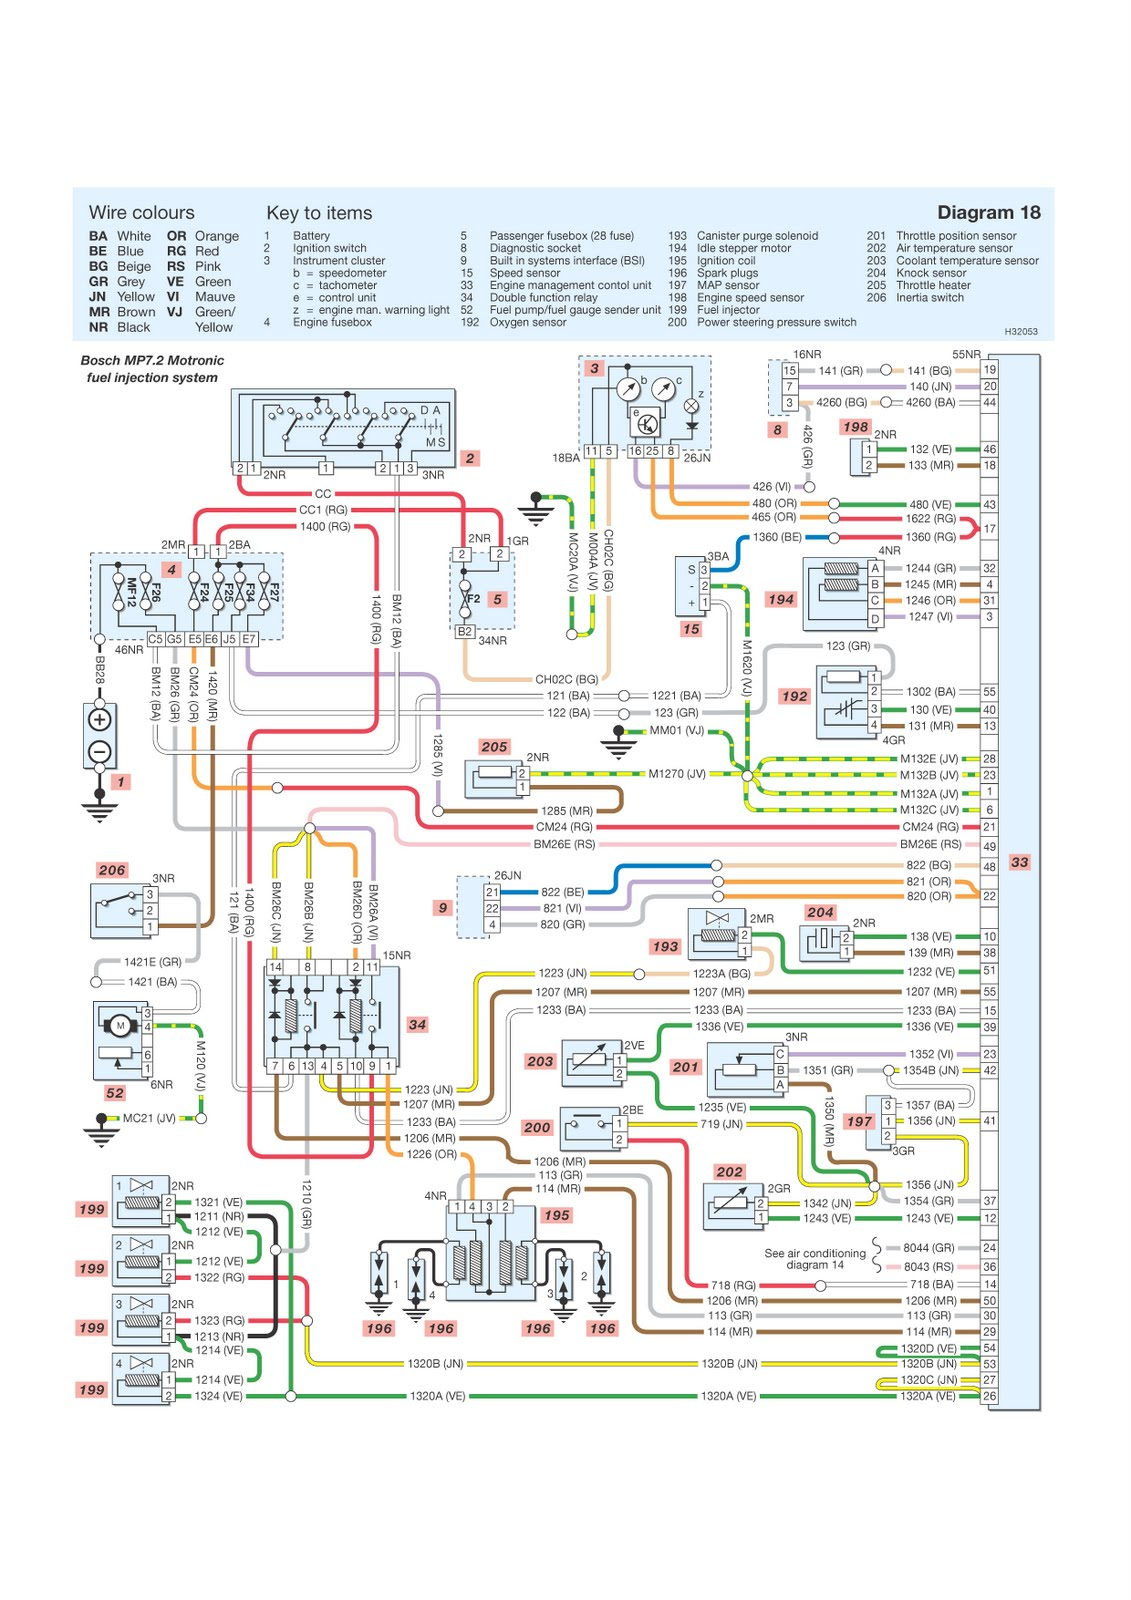 peugeot 206 wiring diagram attwood sahara s500 diagrams wash wipe system abs schematic solutions